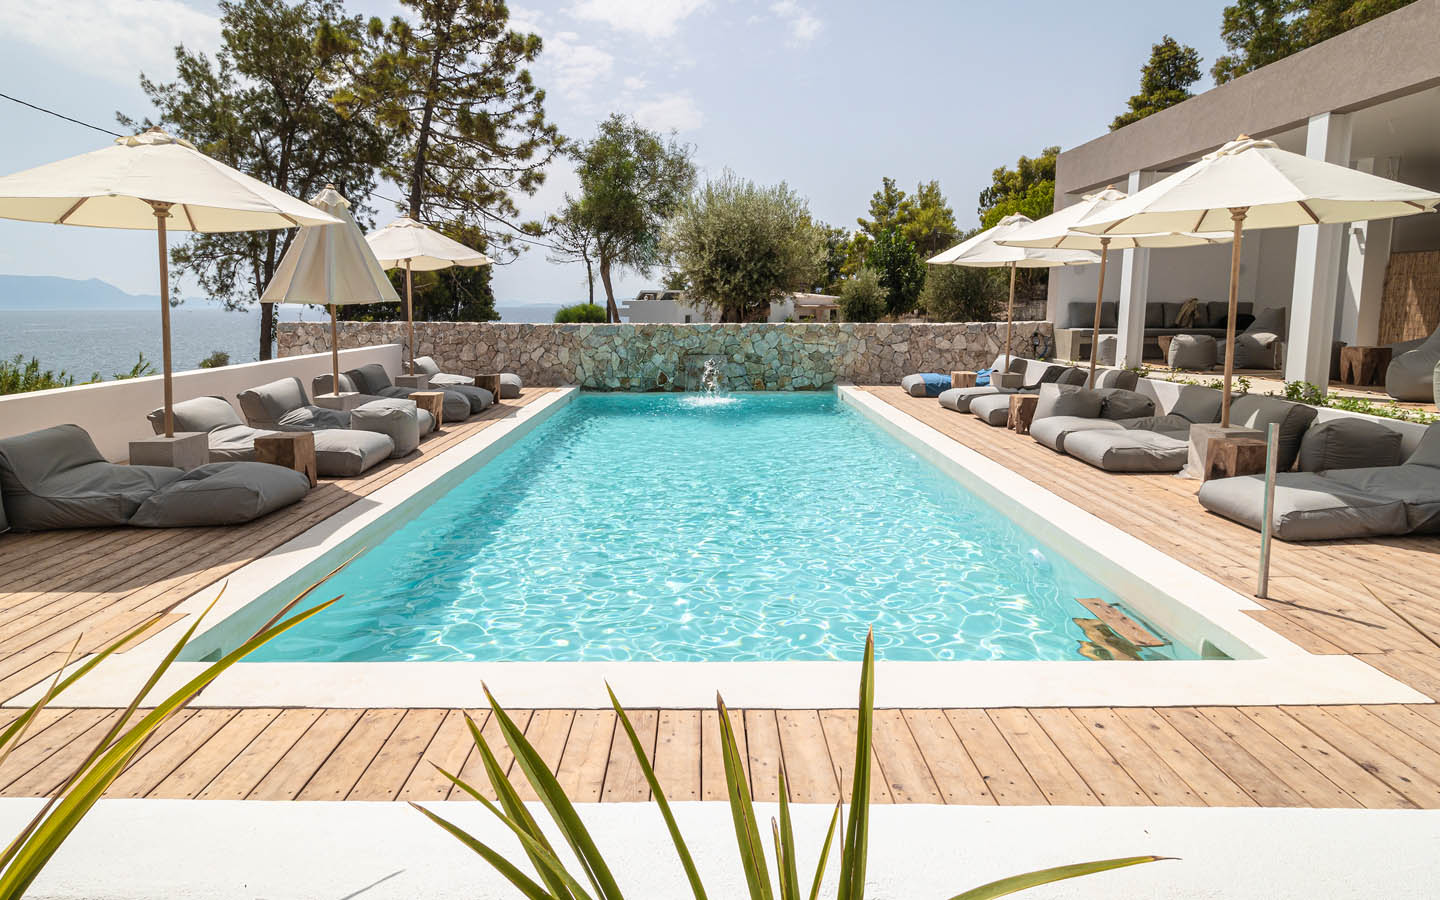 07 poolcentralview - OIK5.12 Arion Seaside Suites